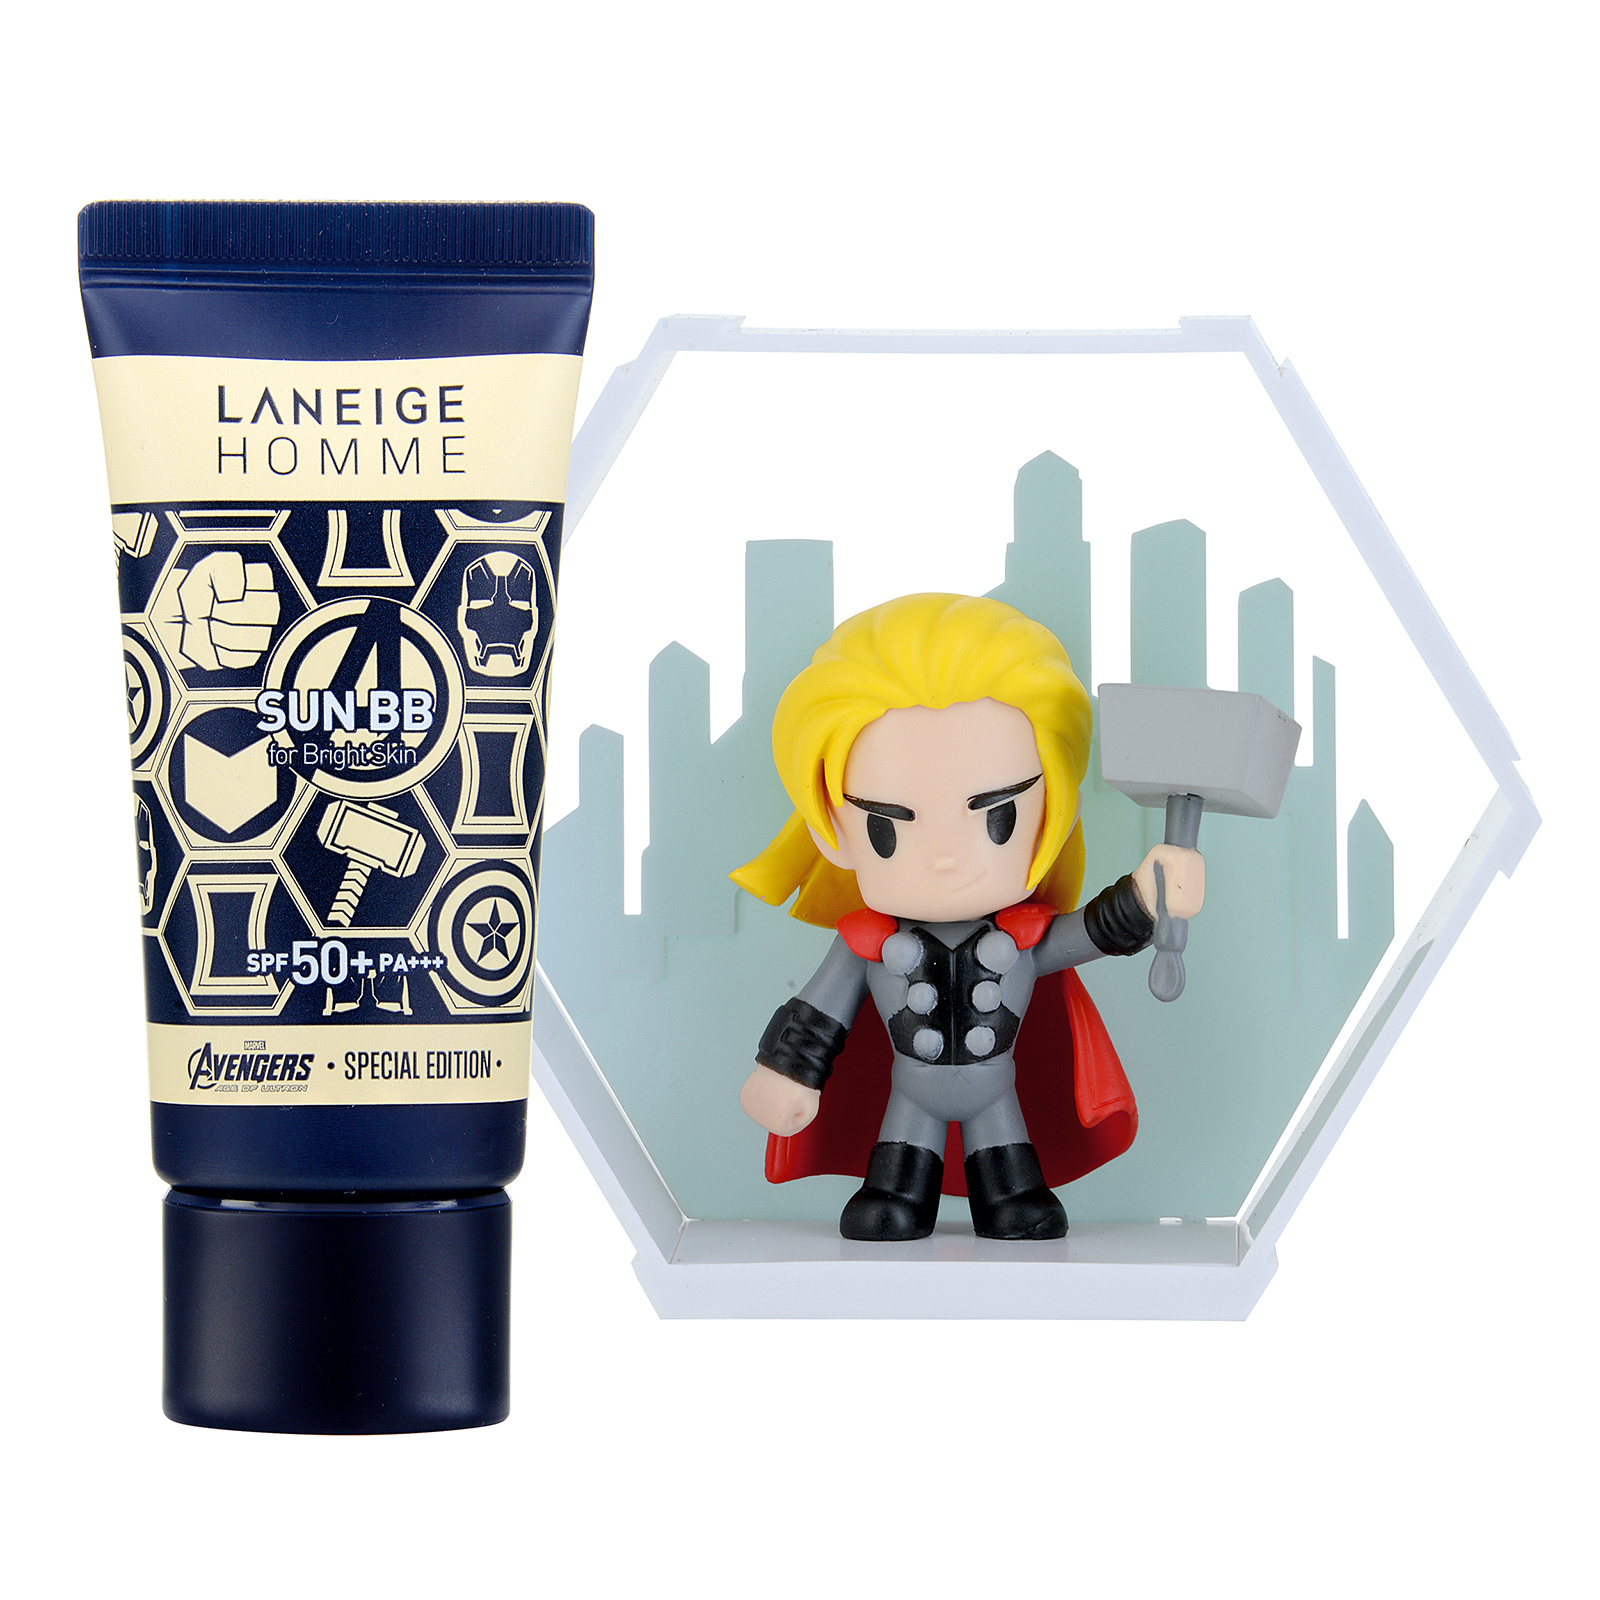 Laneige Homme Homme Sun BB SPF50+ / PA+++ Set with Thor Figure (For Bright Skin) 1set, 2pcs